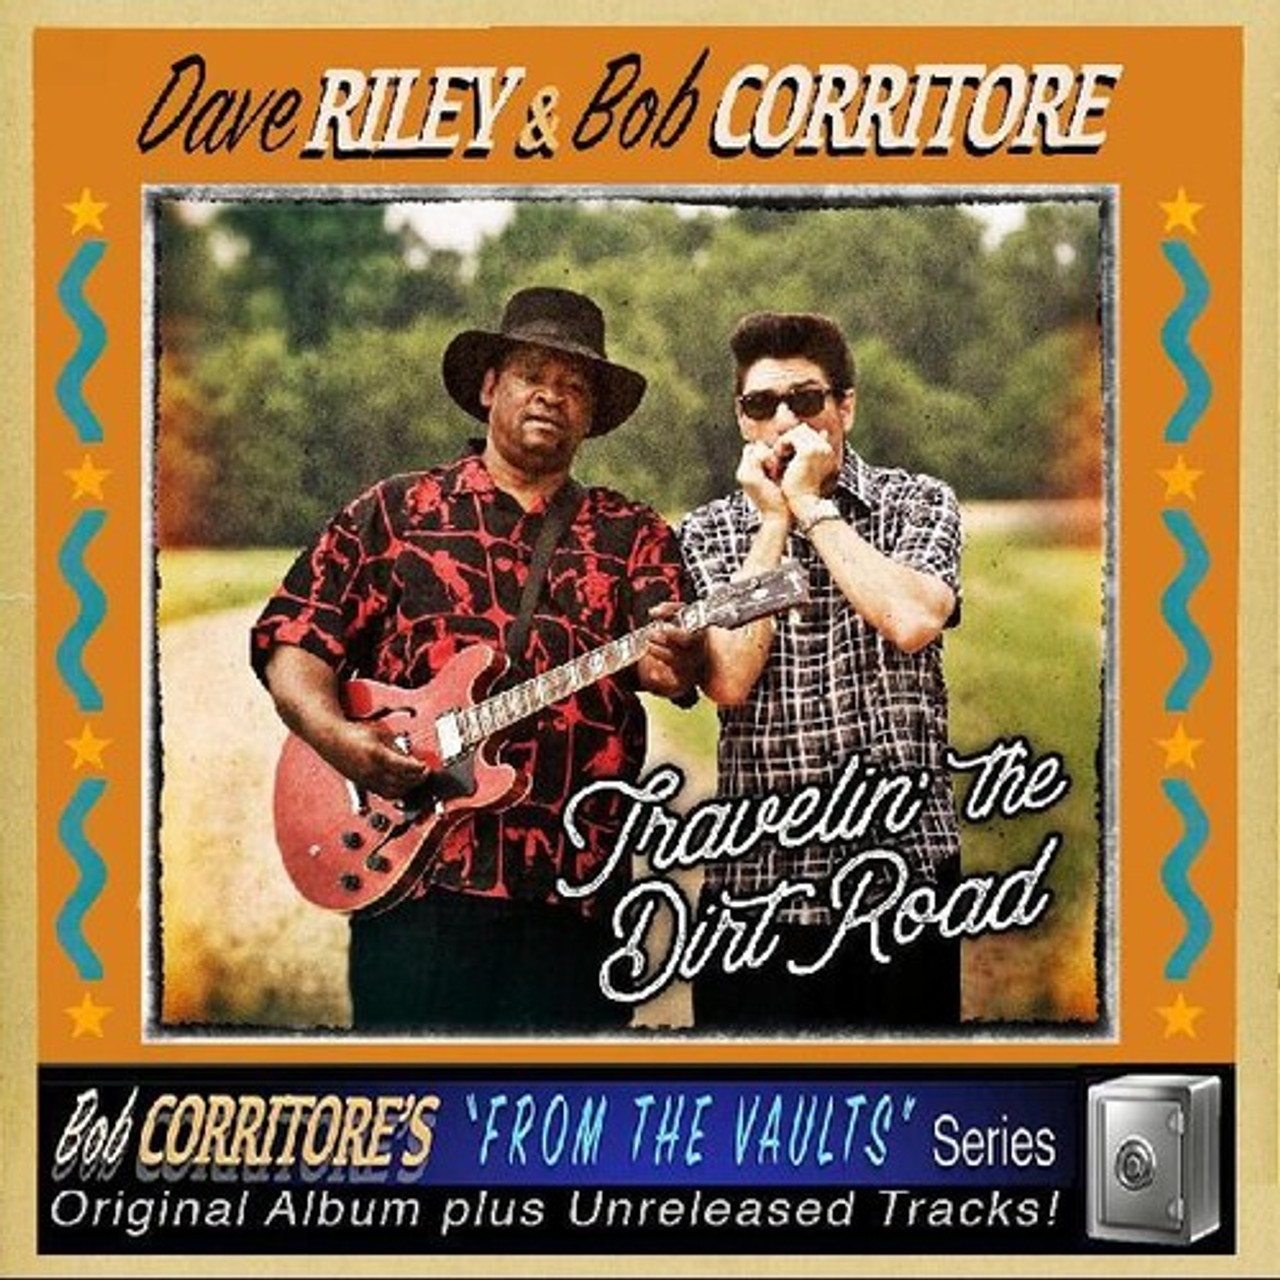 BOB CORRITORE/DAVE RILEY - TRAVELIN' THE DIRT ROAD